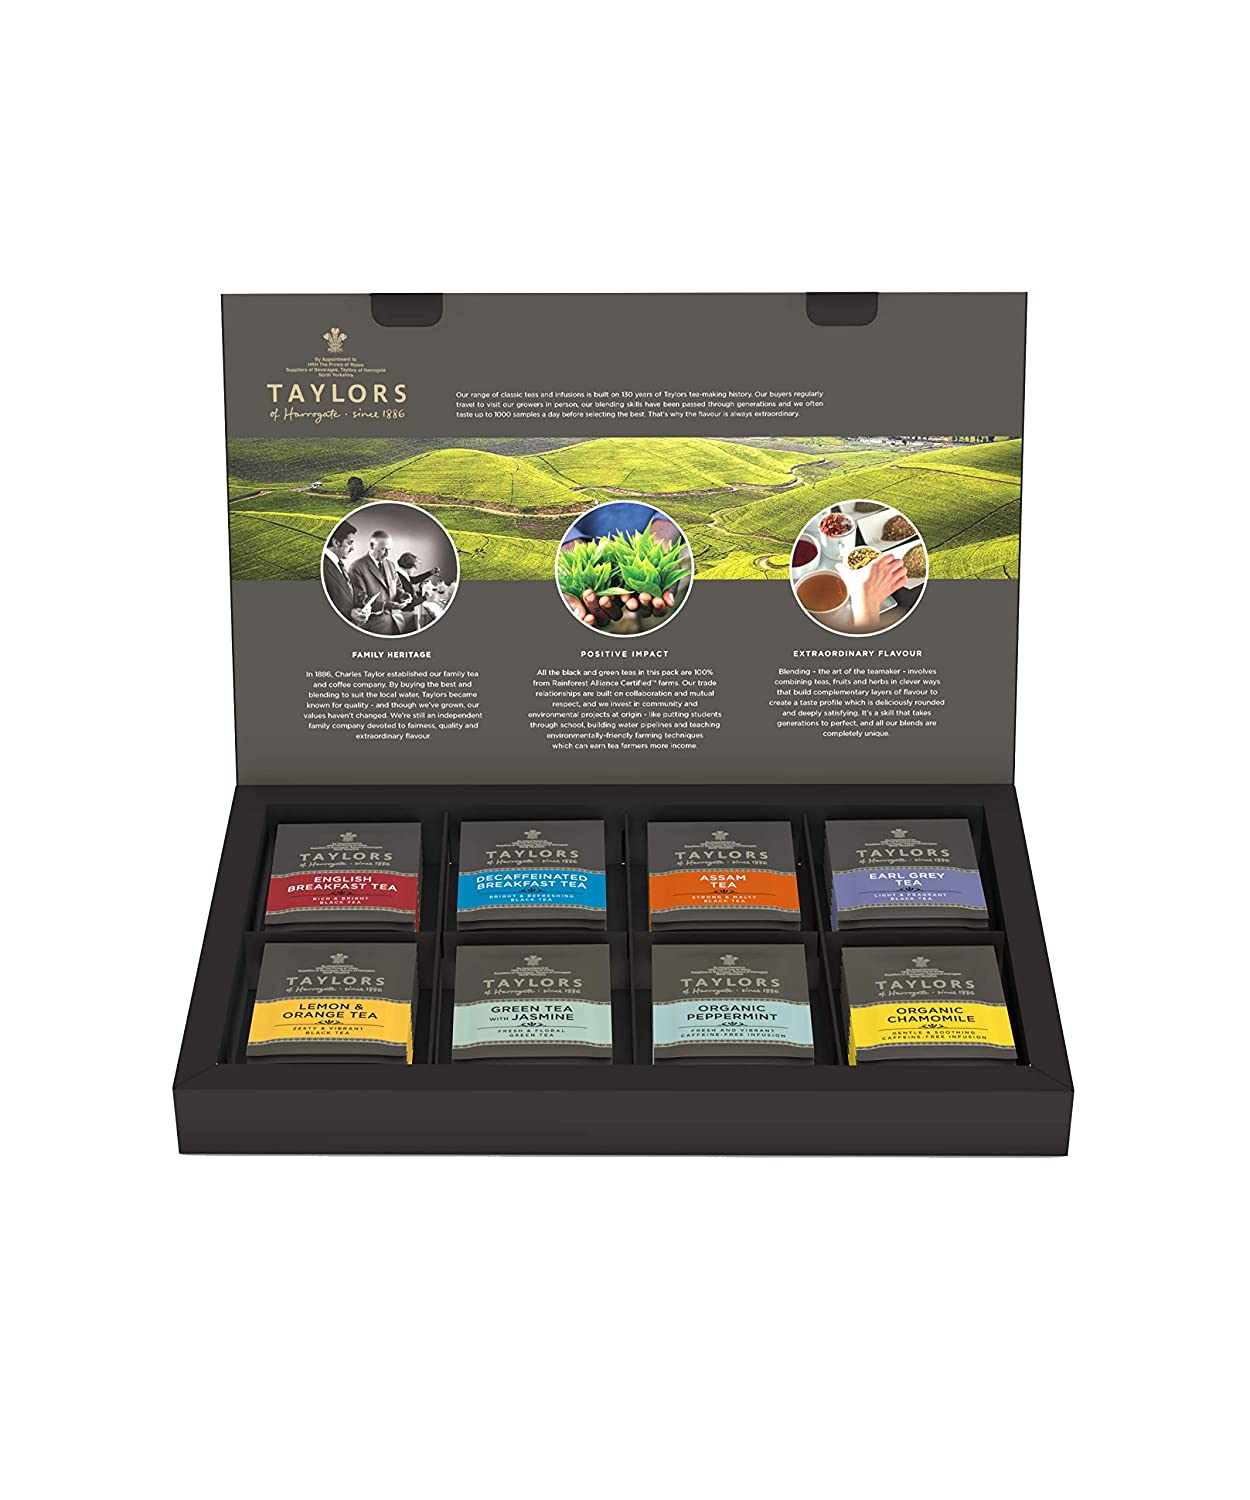 Review of Taylors of Harrogate Classic Tea Variety Box, 48 Count (Pack of 1)